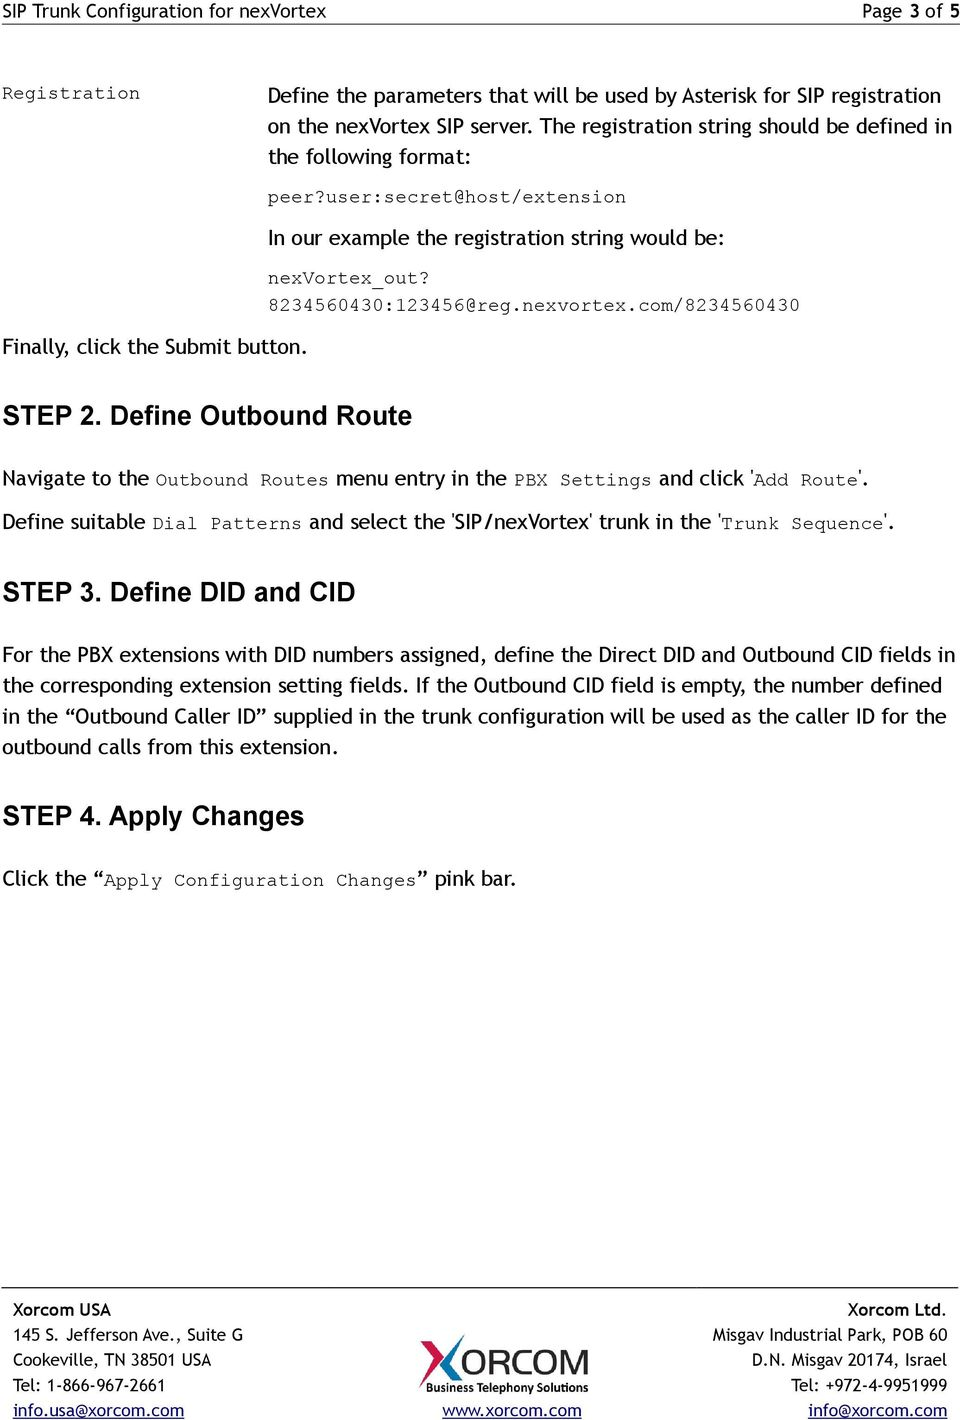 8234560430:123456@reg.nexvortex.com/8234560430 STEP 2. Define Outbound Route Navigate to the Outbound Routes menu entry in the PBX Settings and click 'Add Route'.